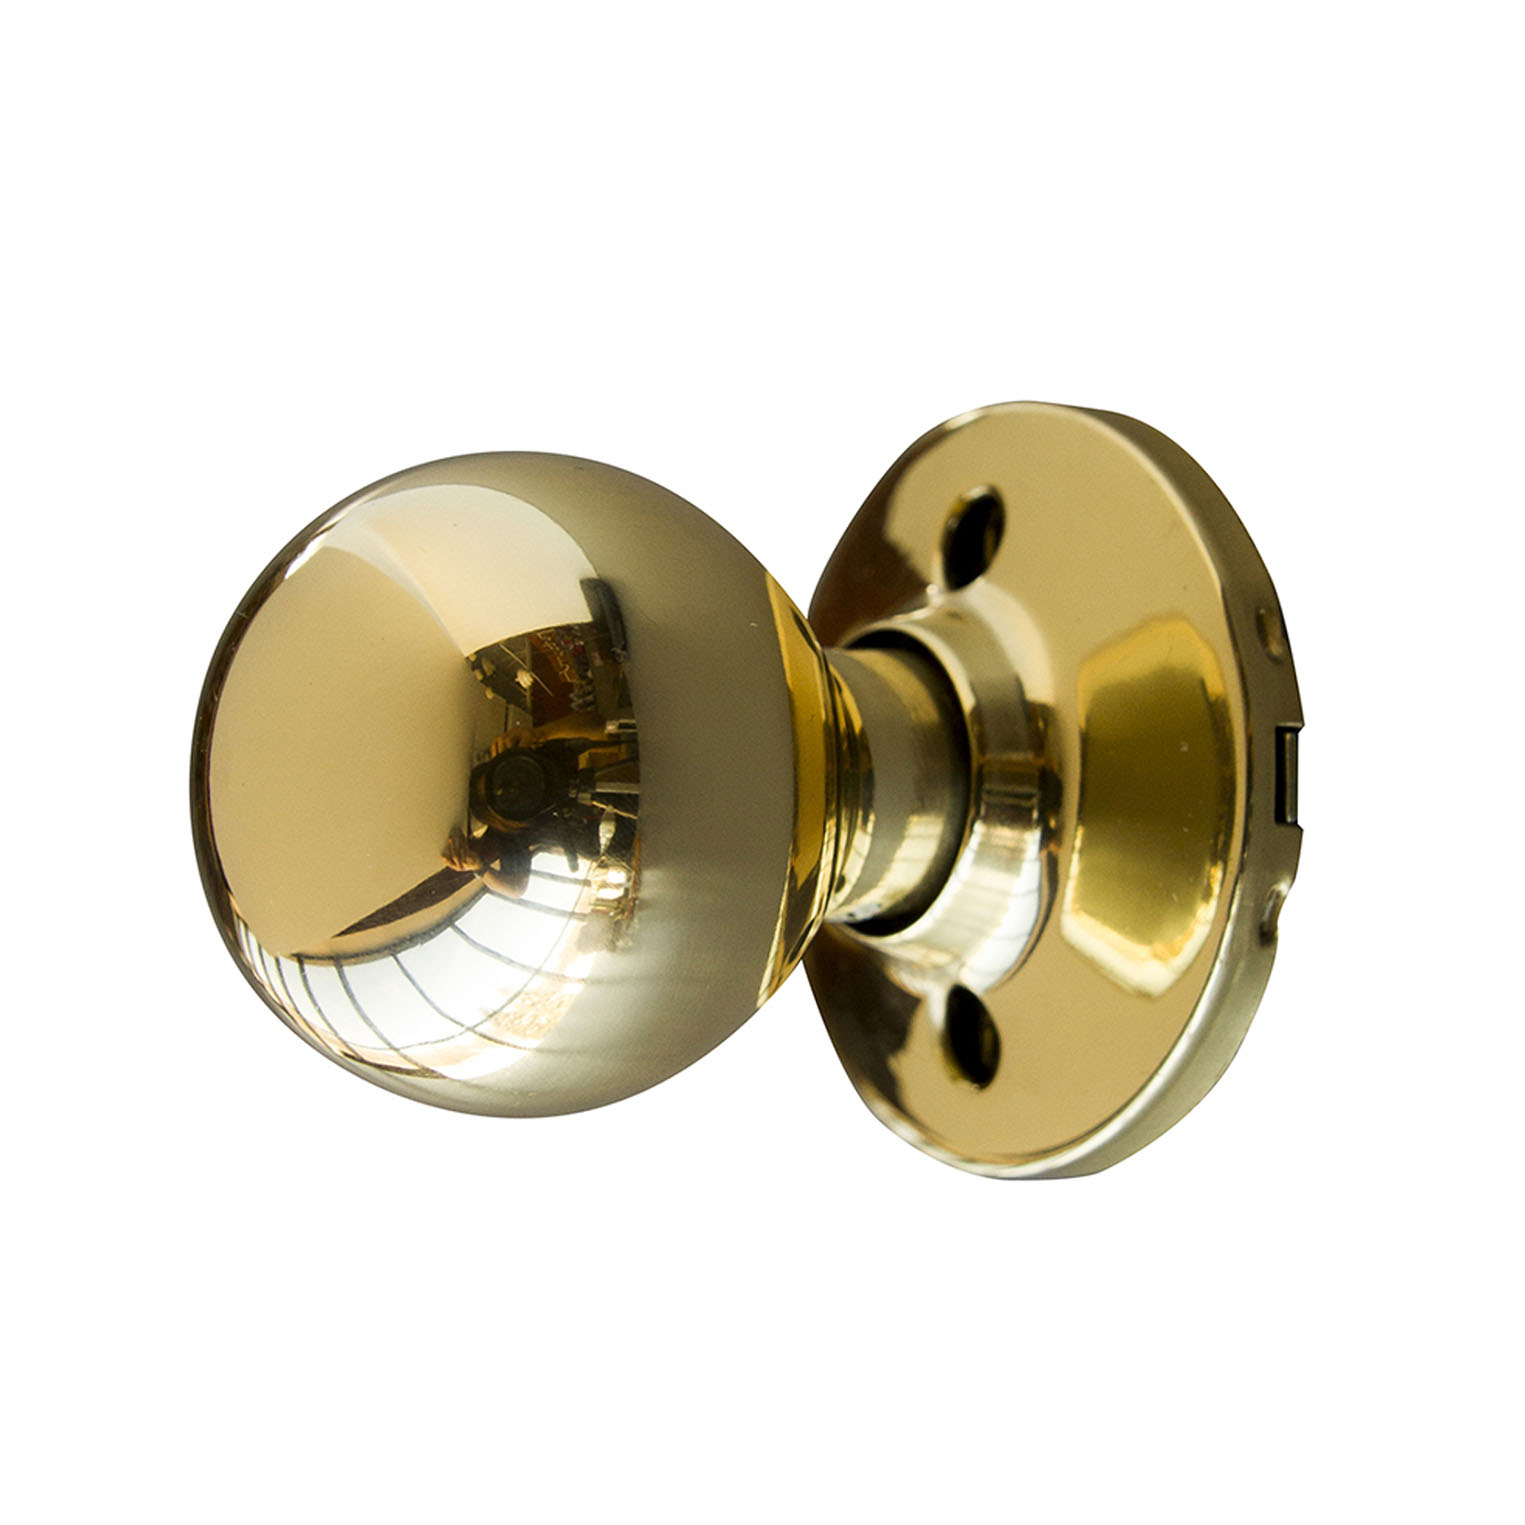 Design House Bay Dummy Door Knob, Polished Brass - 727008